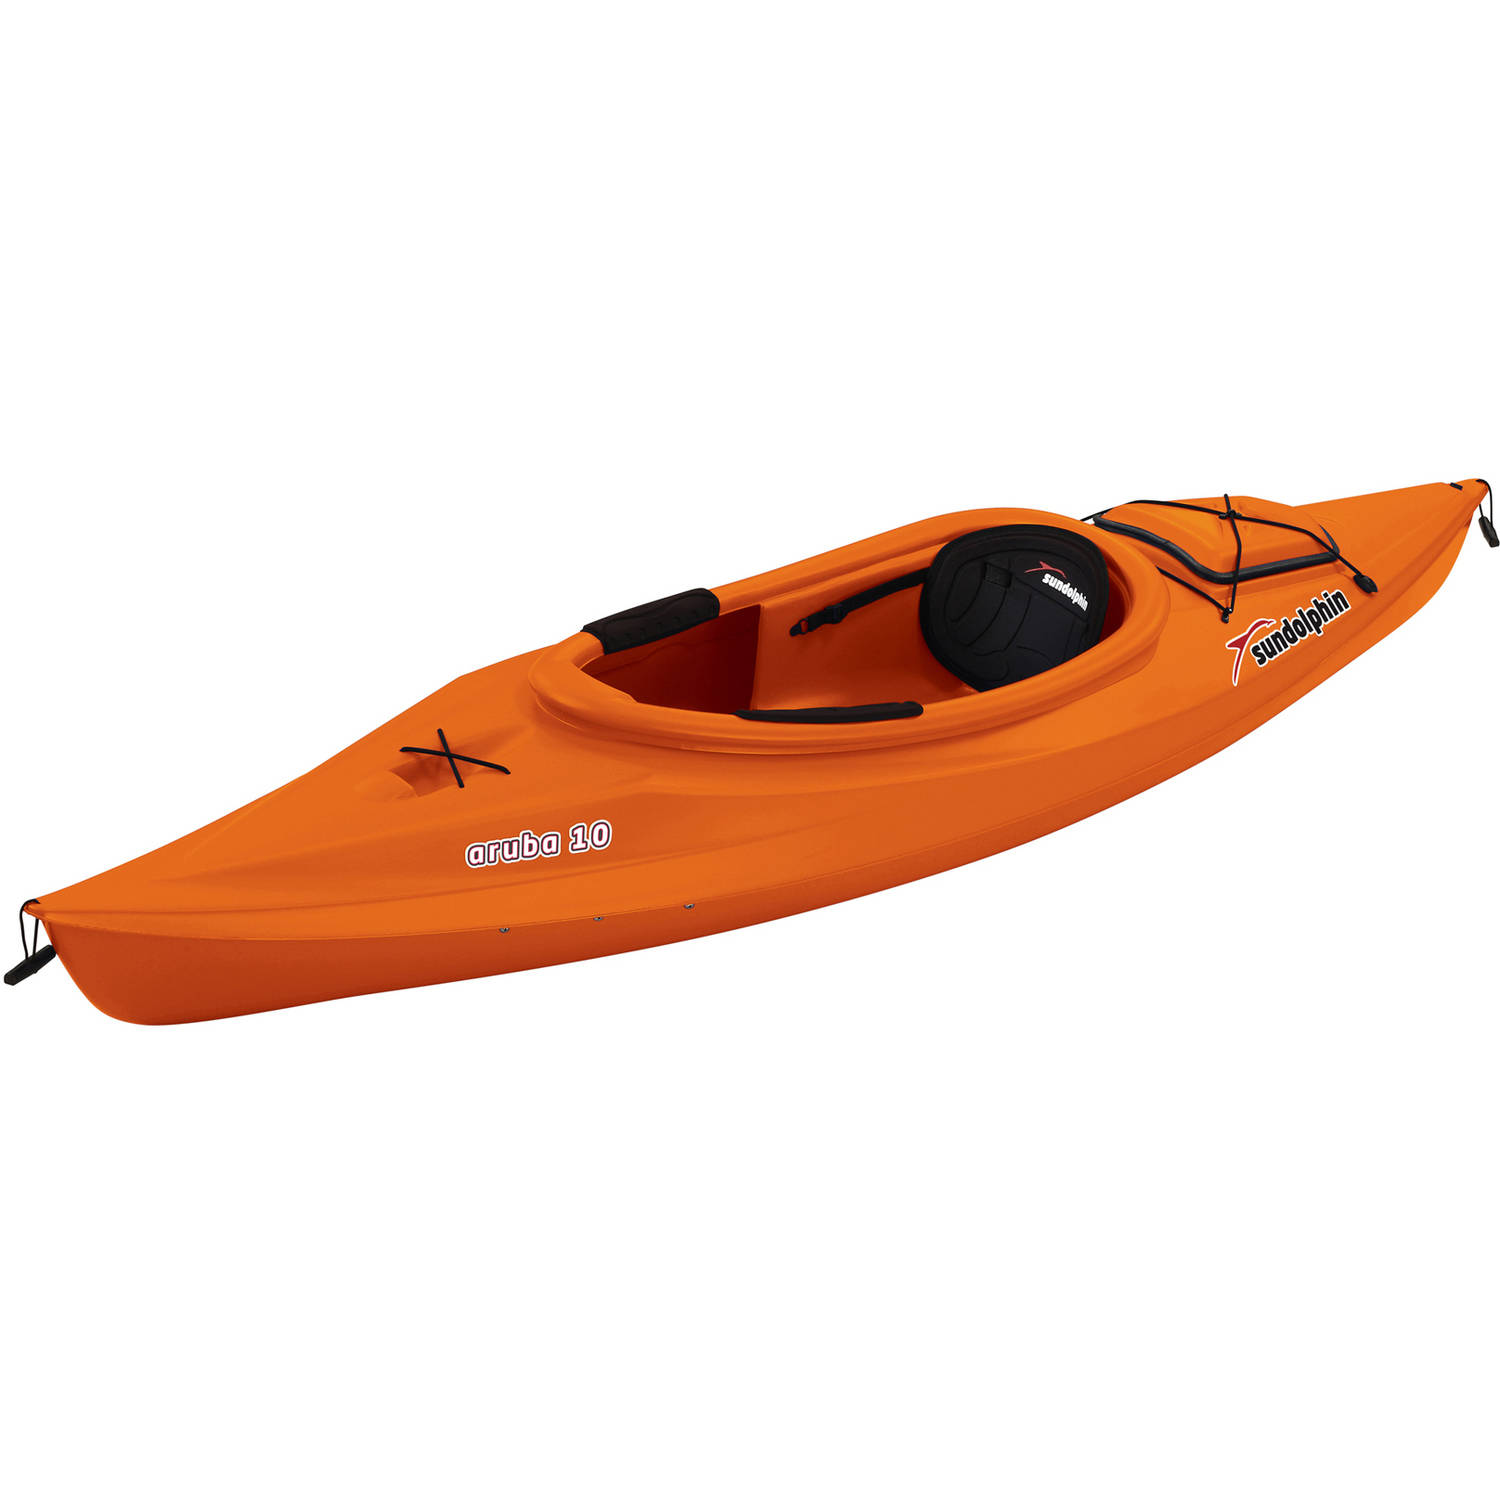 Sun Dolphin Aruba 10' Sit In Kayak, Paddle Included Image 1 of 7